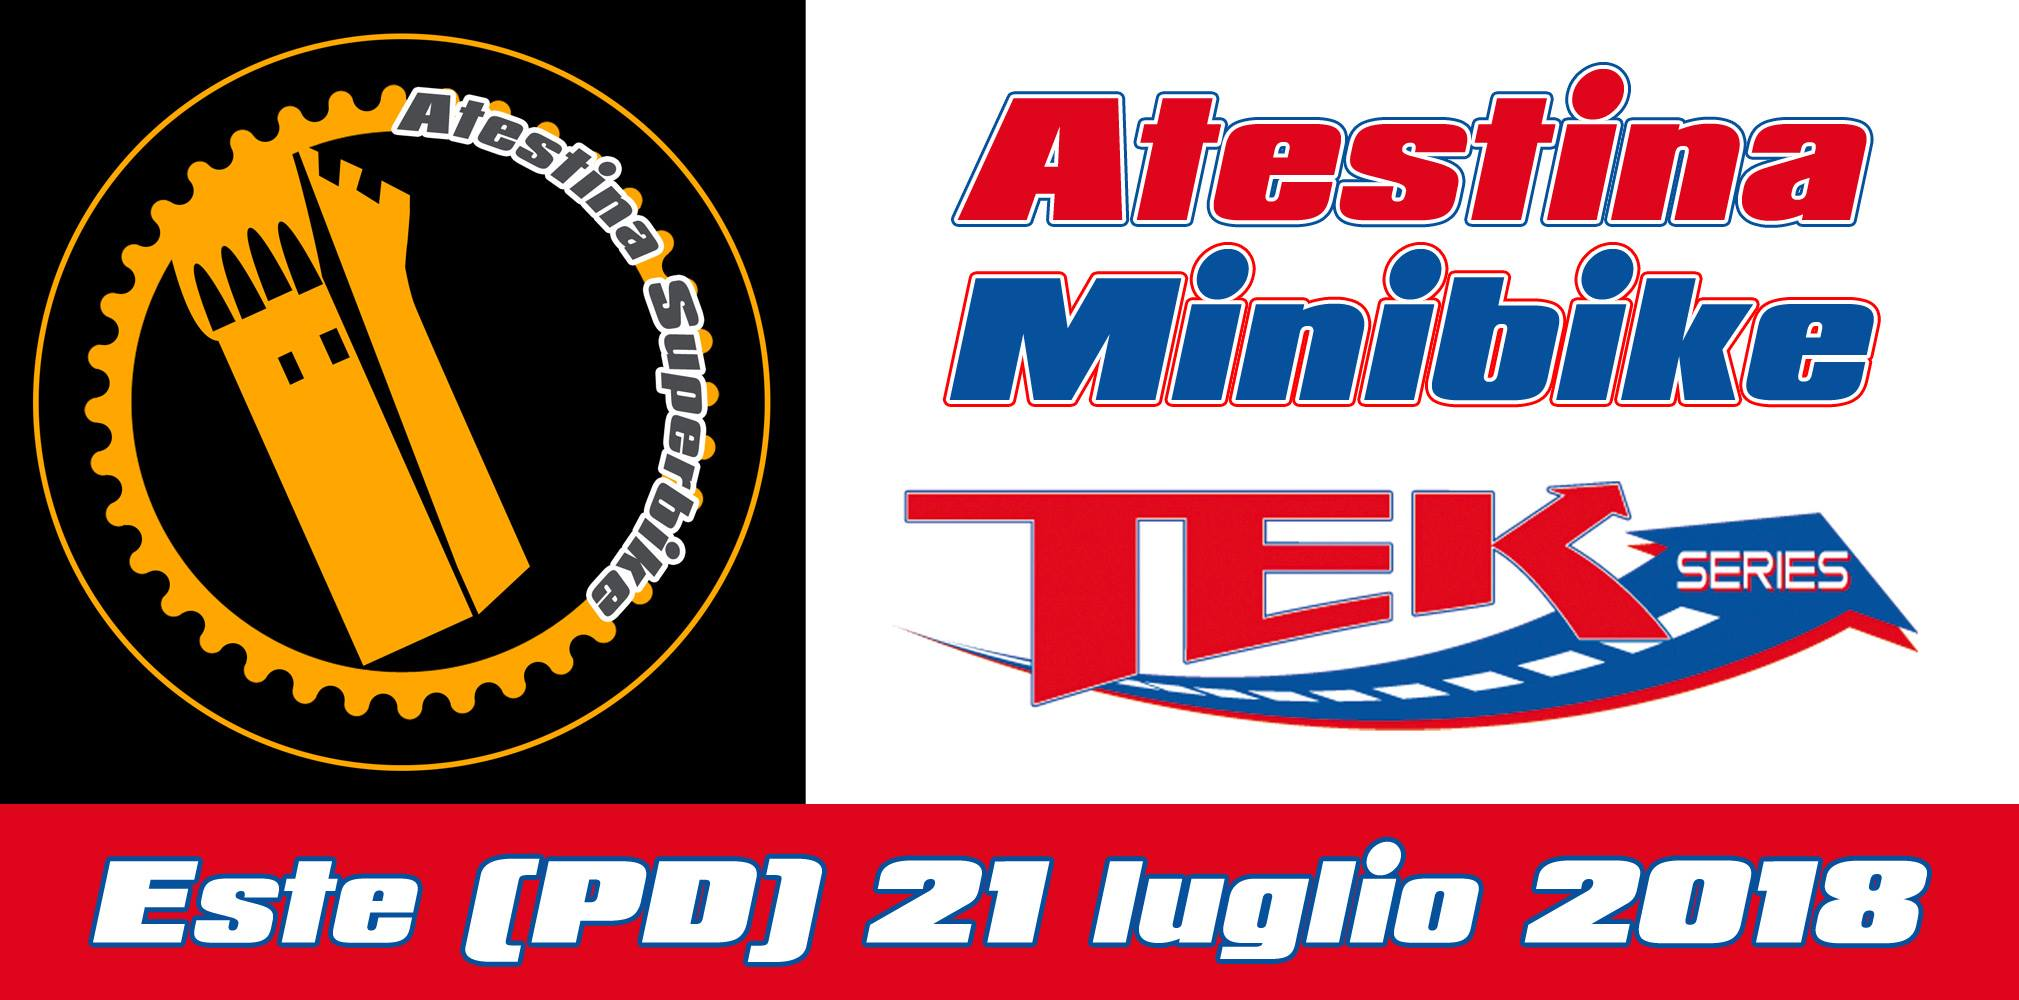 11/1/18 Tek Series e Aquadro2 al fianco di Atheste Bike